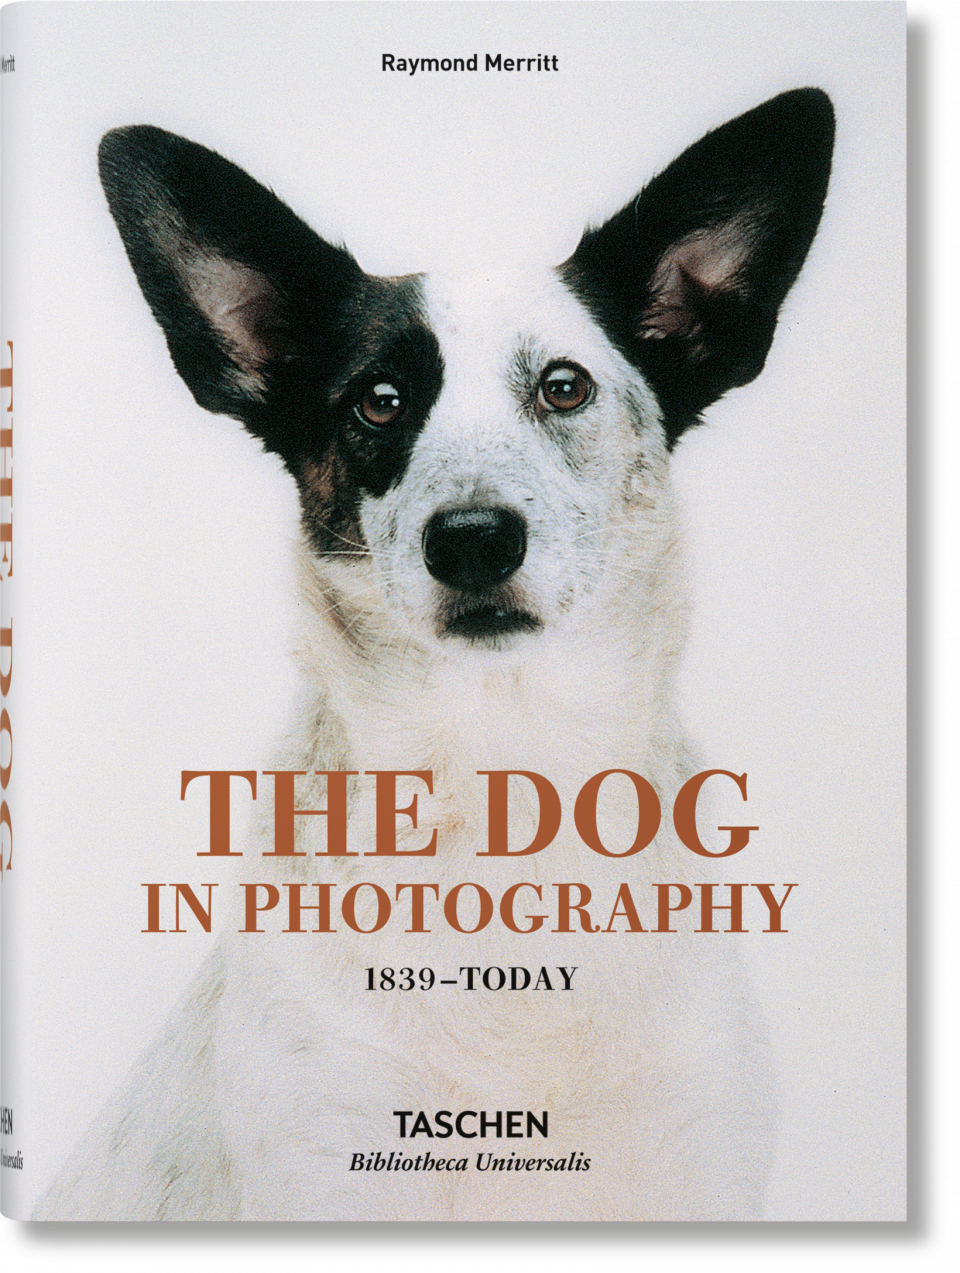 The dog in photography, de R. Merritt, éd. Taschen